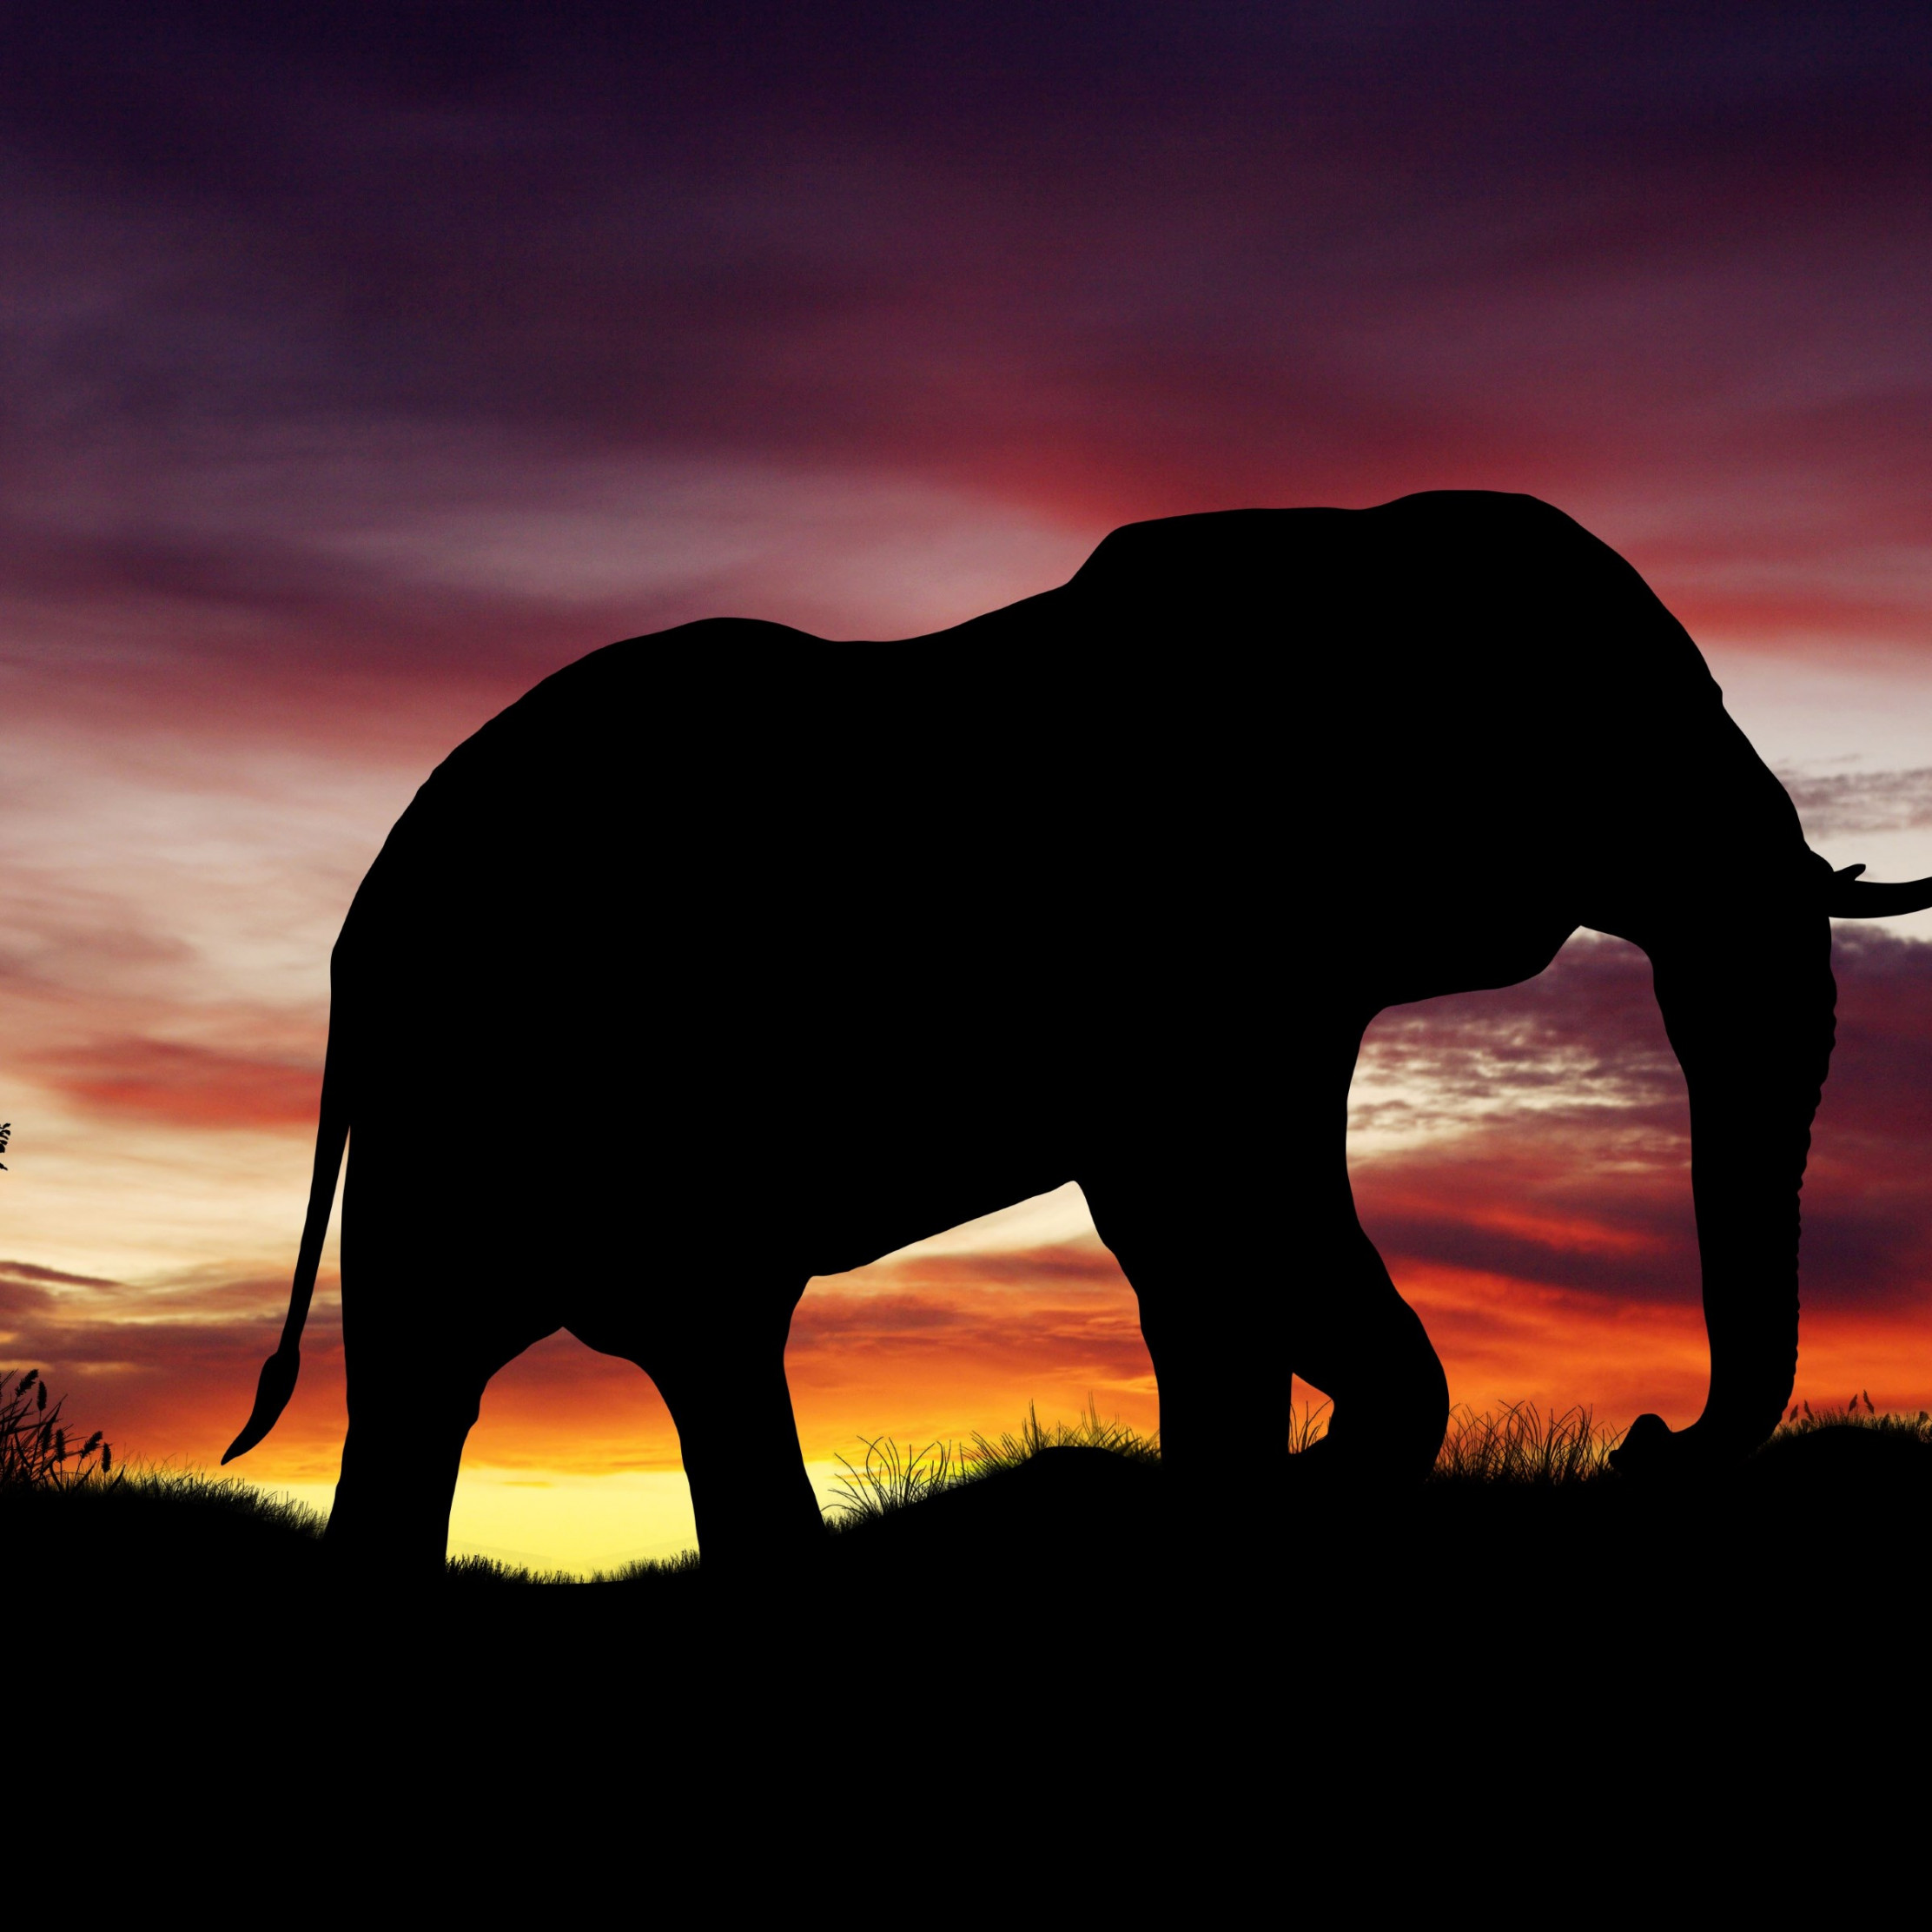 Elephant silhouette wallpaper 2224x2224